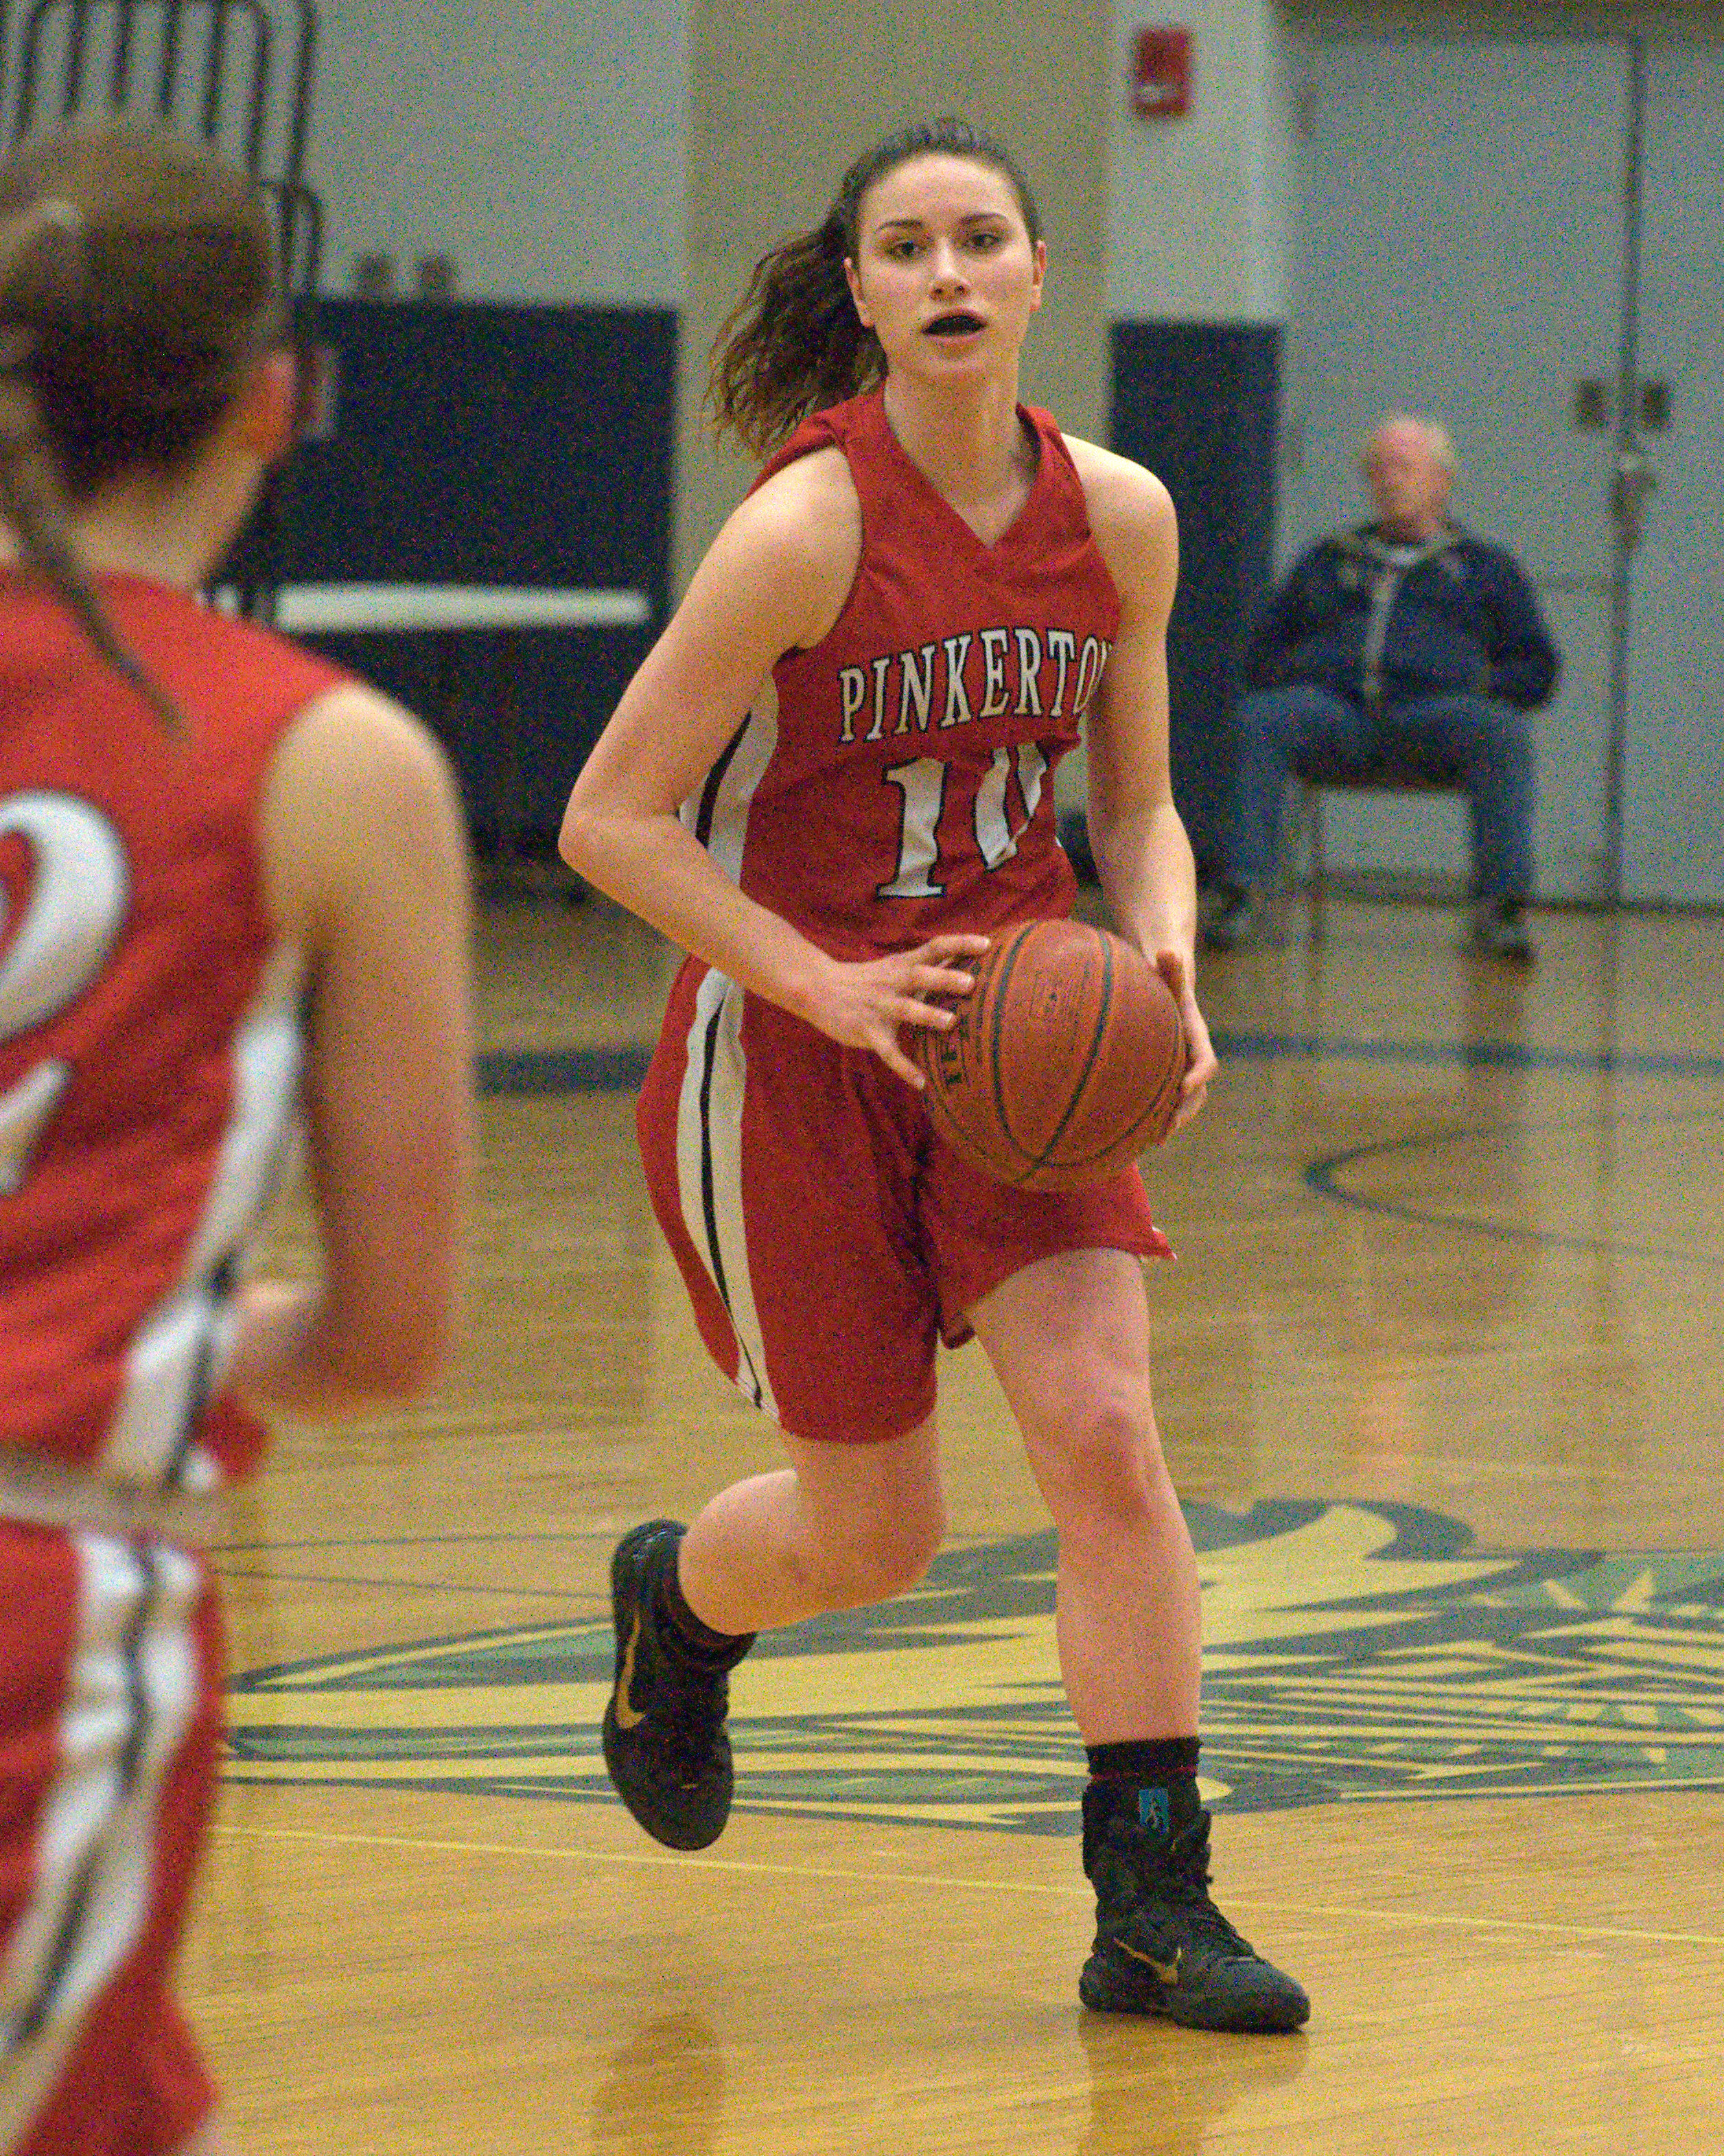 Pinkerton's Valerie Martin is one of five finalists. Find out who the winner is on Saturday.